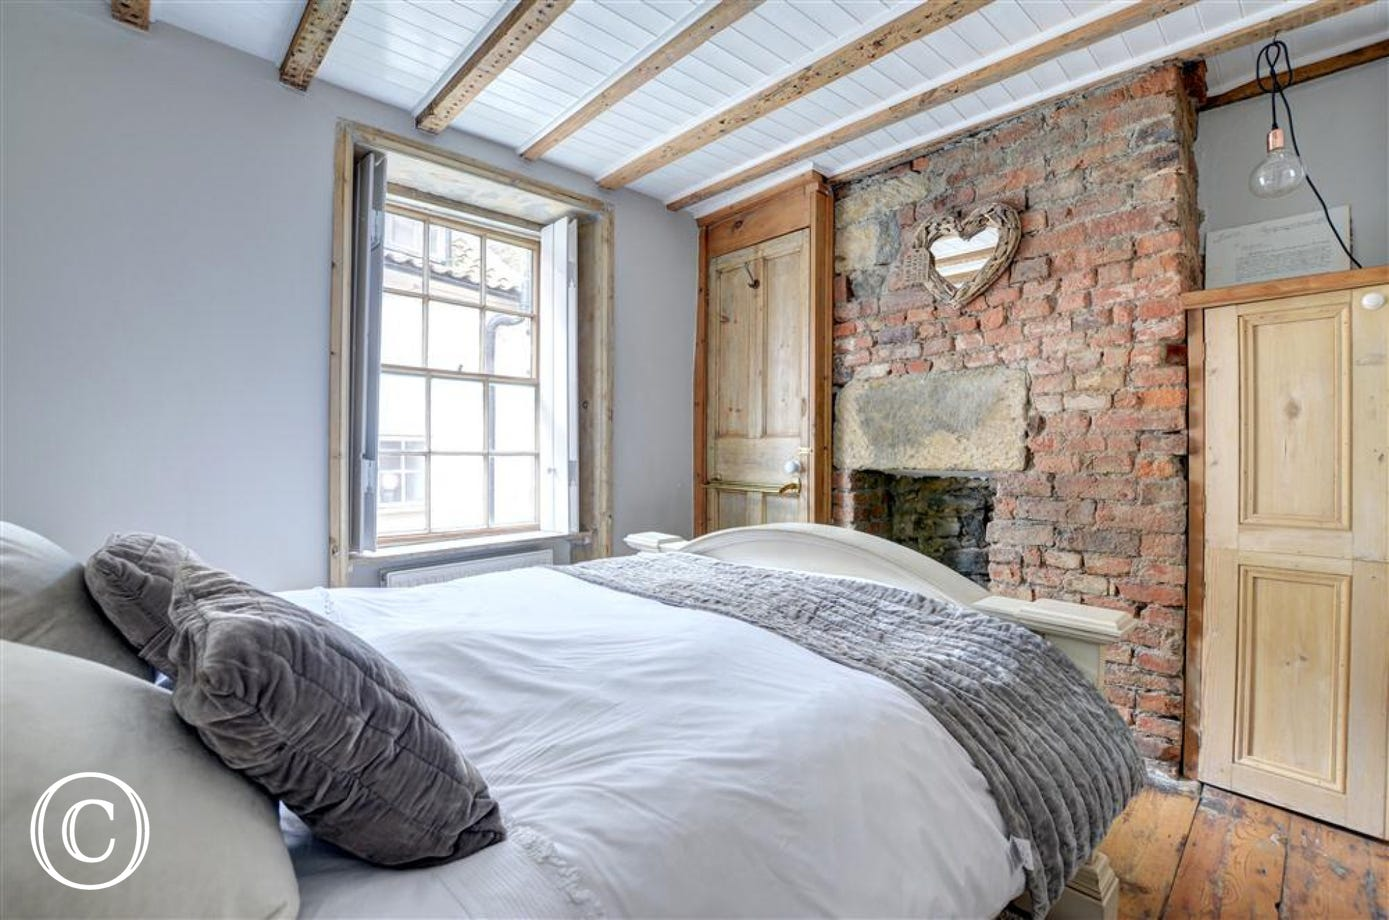 The double Bedroom includes a red brick stone wall.